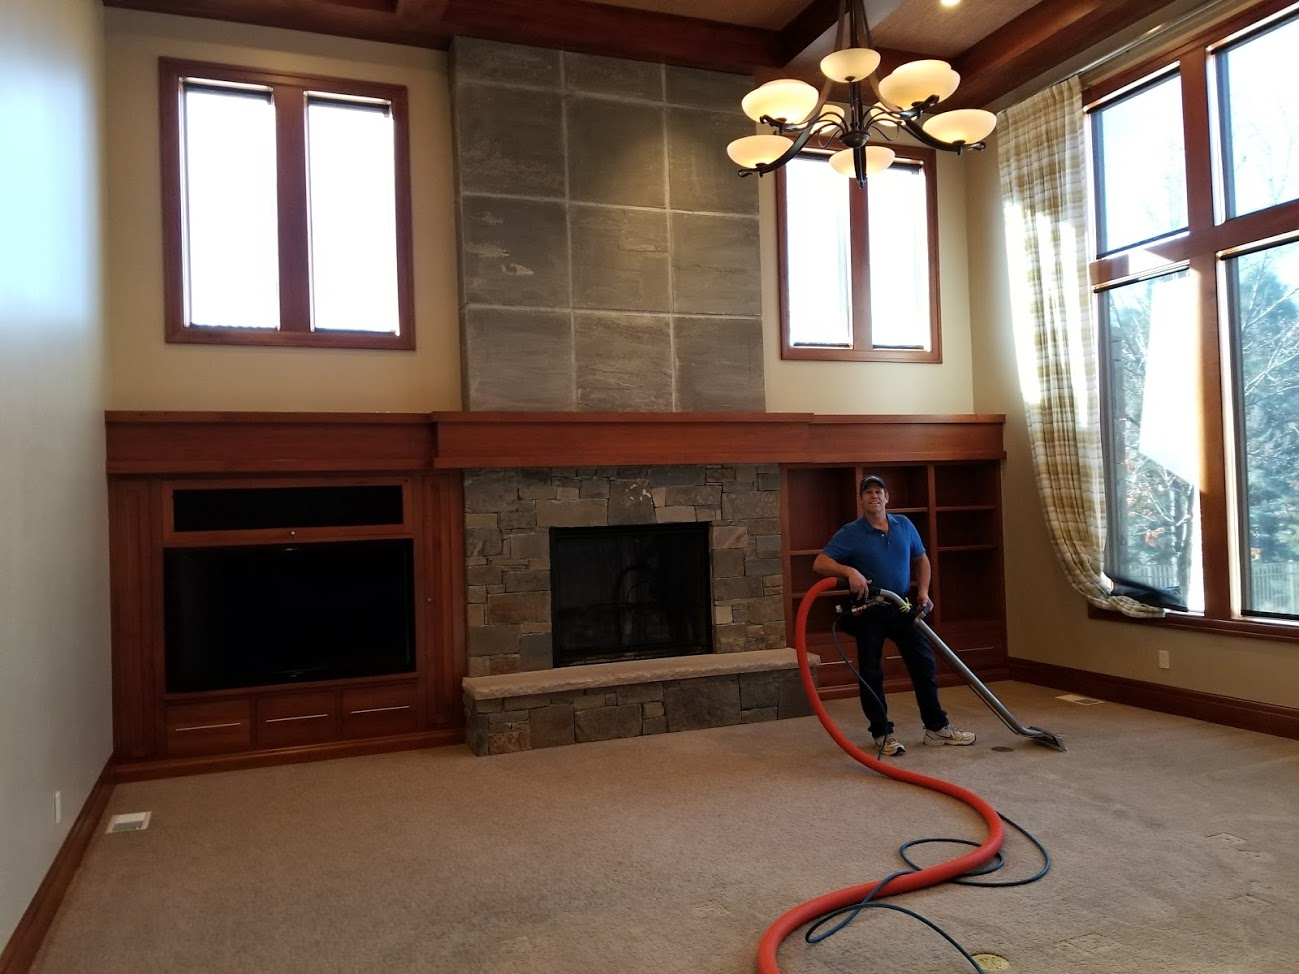 carpet cleaning in orem utah.jpg